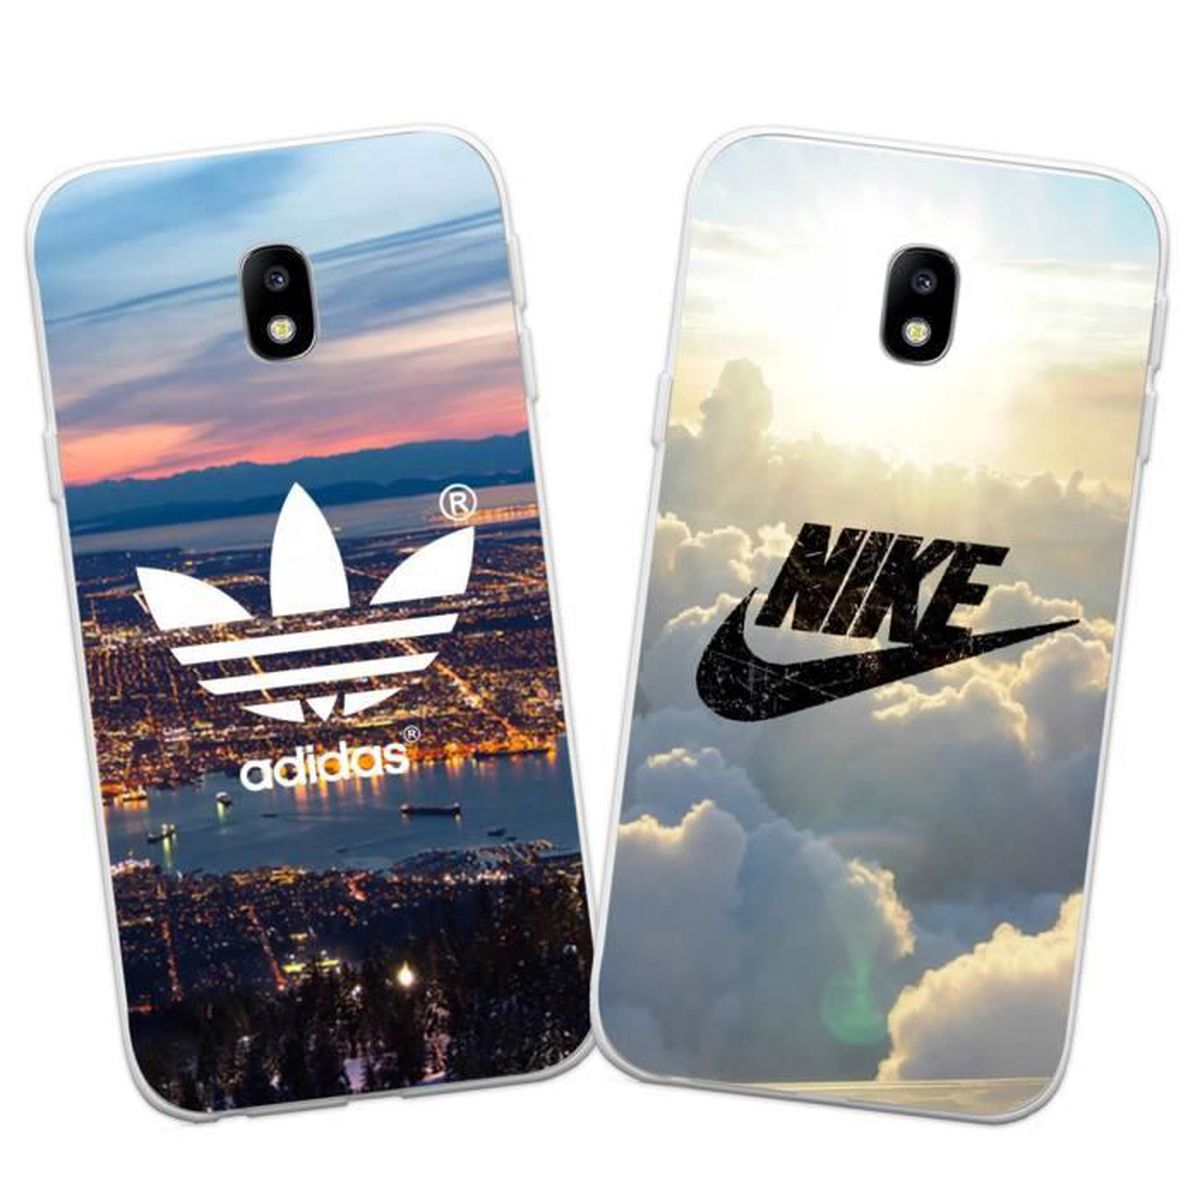 2 x coque samsung galaxy j5 2017 j530 nike et adidas doux souple tpu silicone housse tui pour. Black Bedroom Furniture Sets. Home Design Ideas